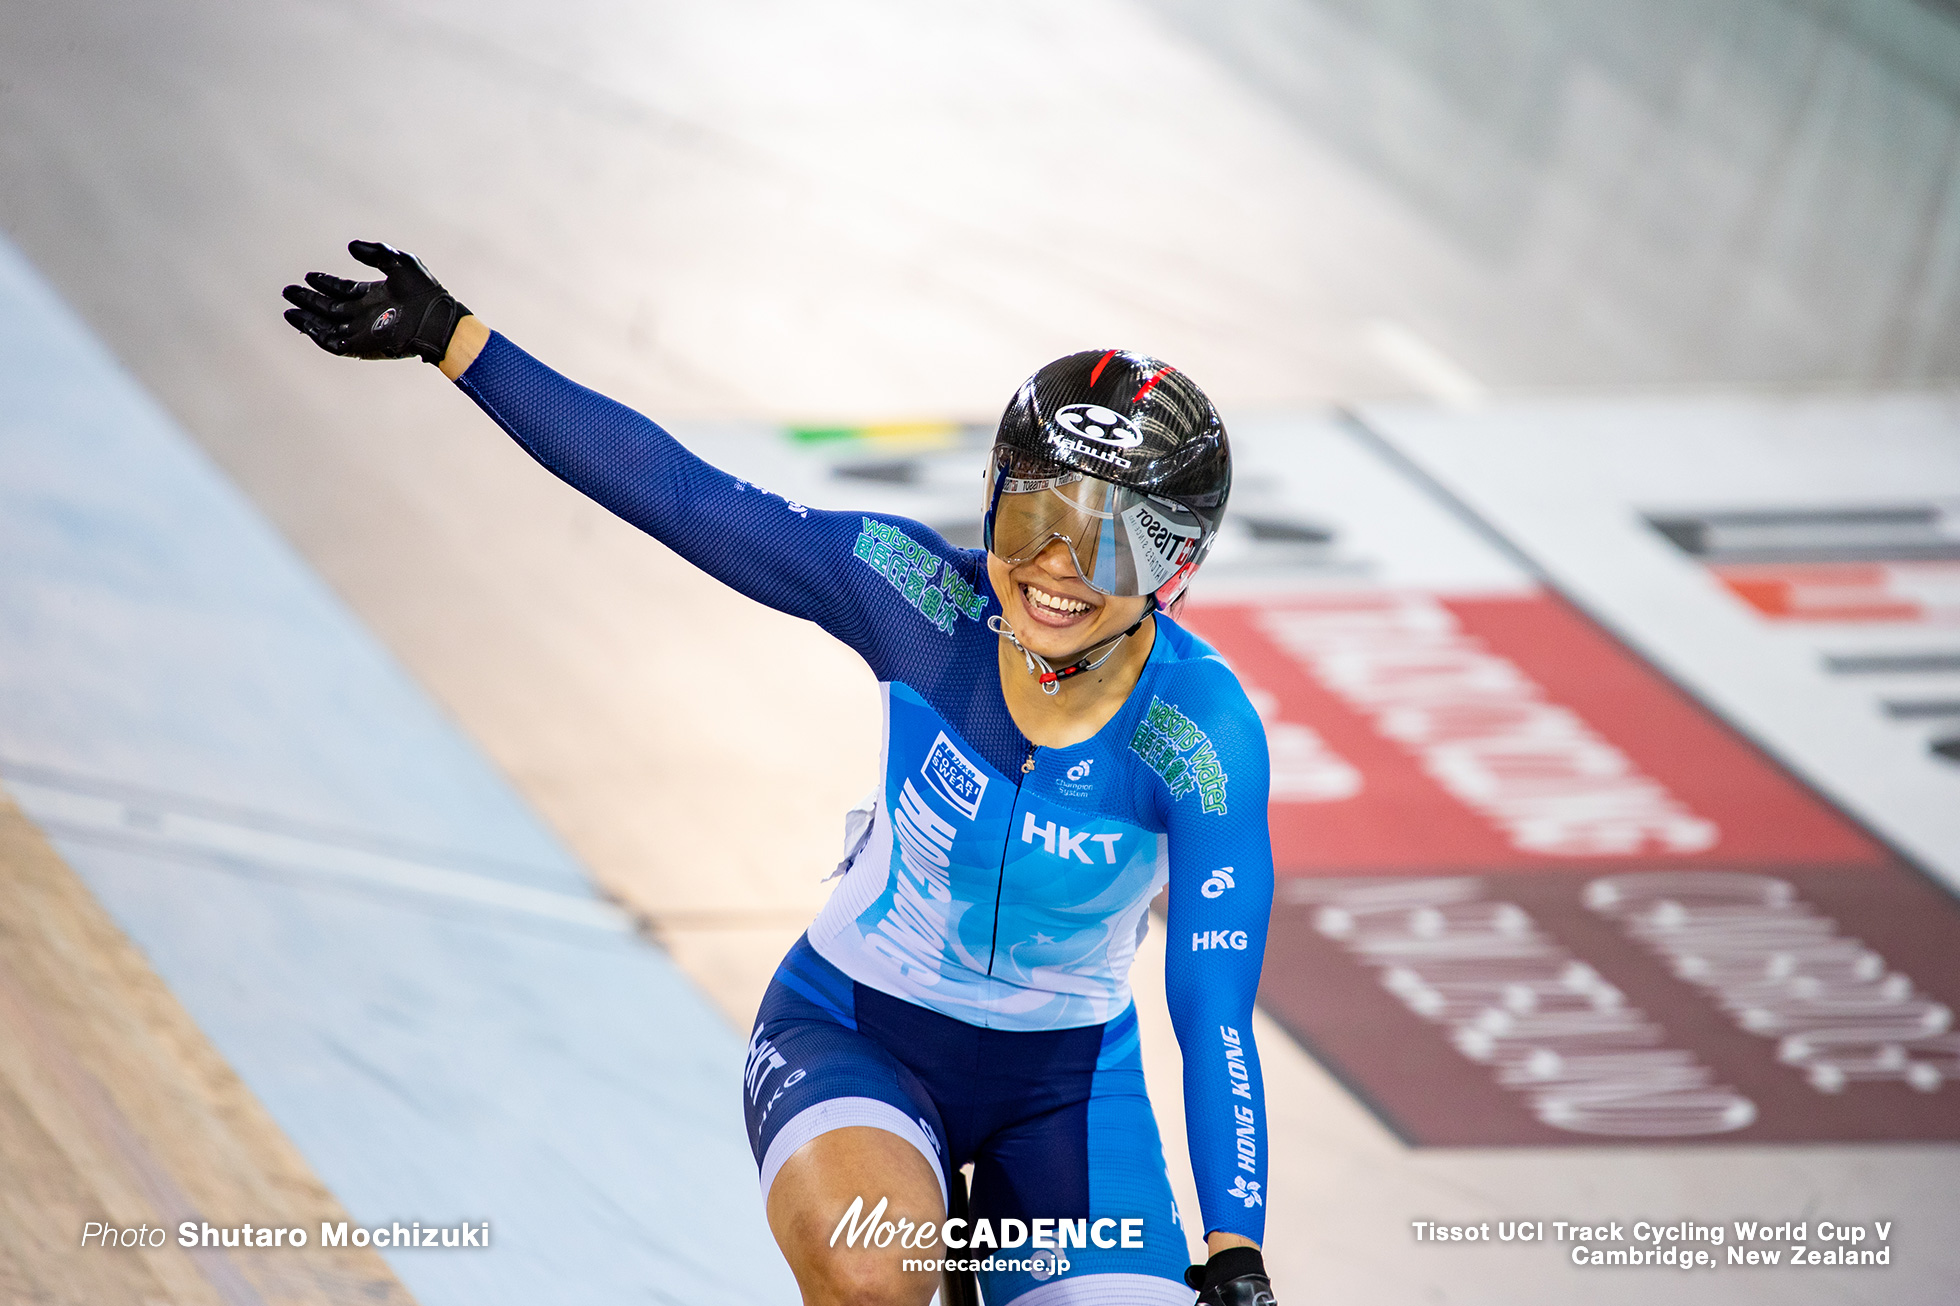 Lee Wai Sze / Final / Women's Keirin / Track Cycling World Cup V / Cambridge, New Zealand